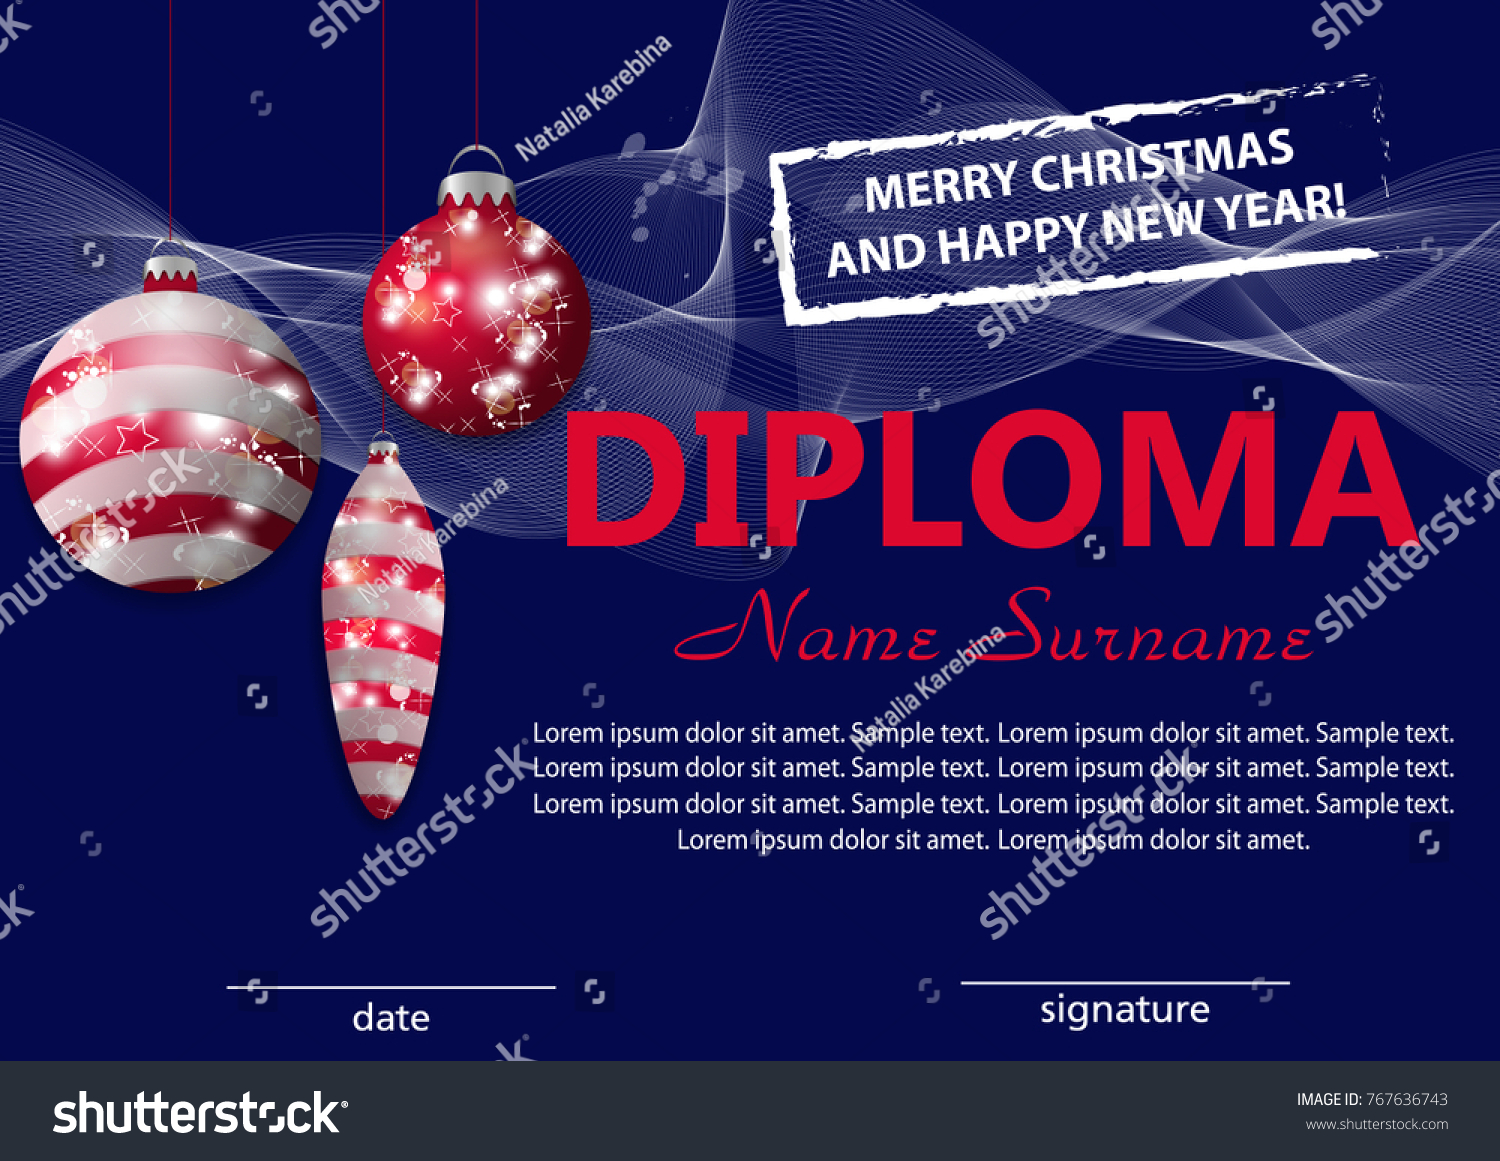 christmas template diploma certificate new year stock vector  christmas template diploma or certificate new year reward decorative red baubles vector illustration